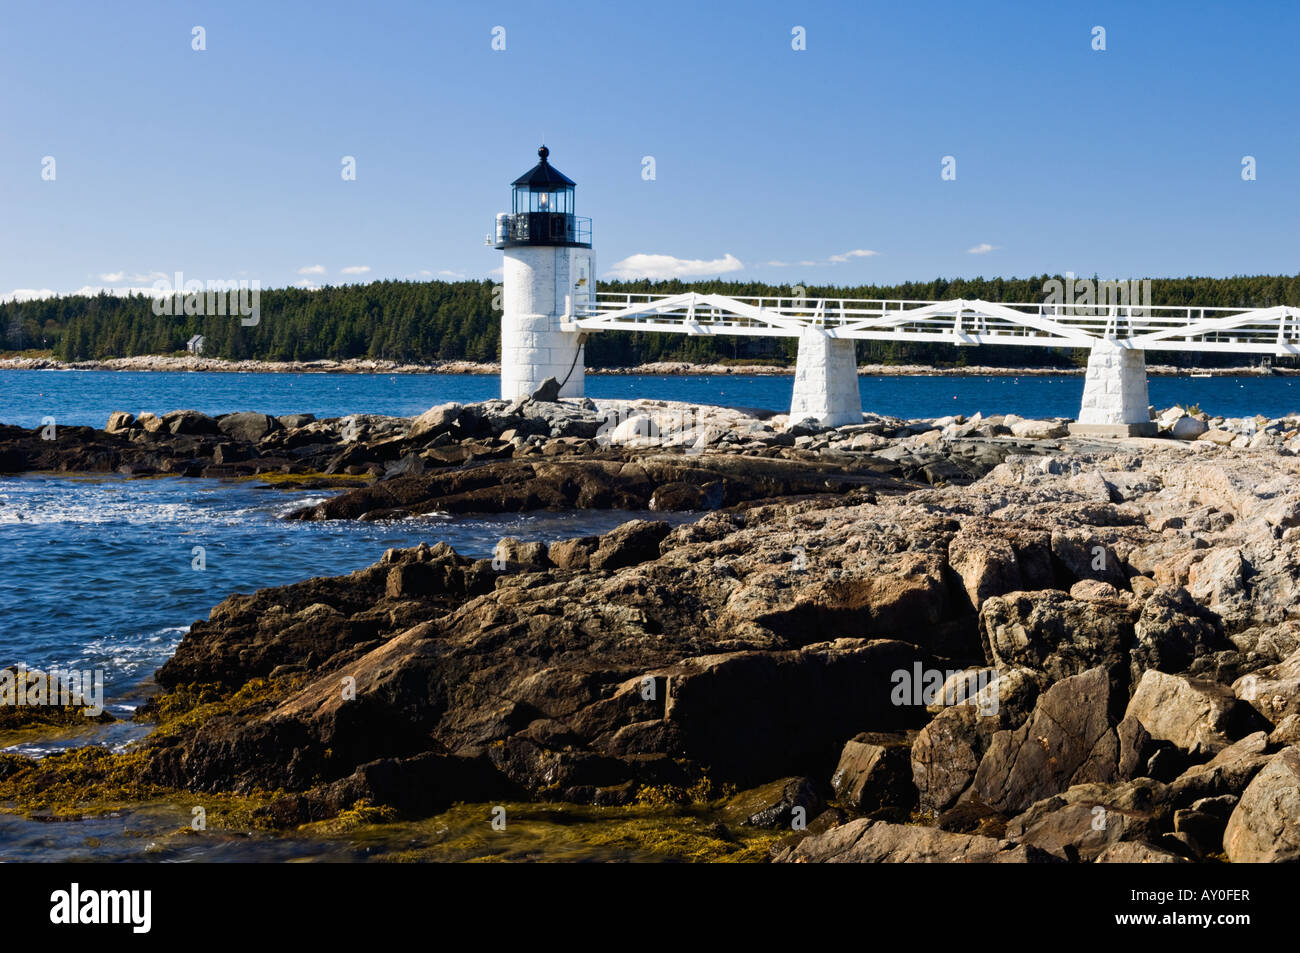 Marshall Point Lighthouse Port Clyde Maine - Stock Image